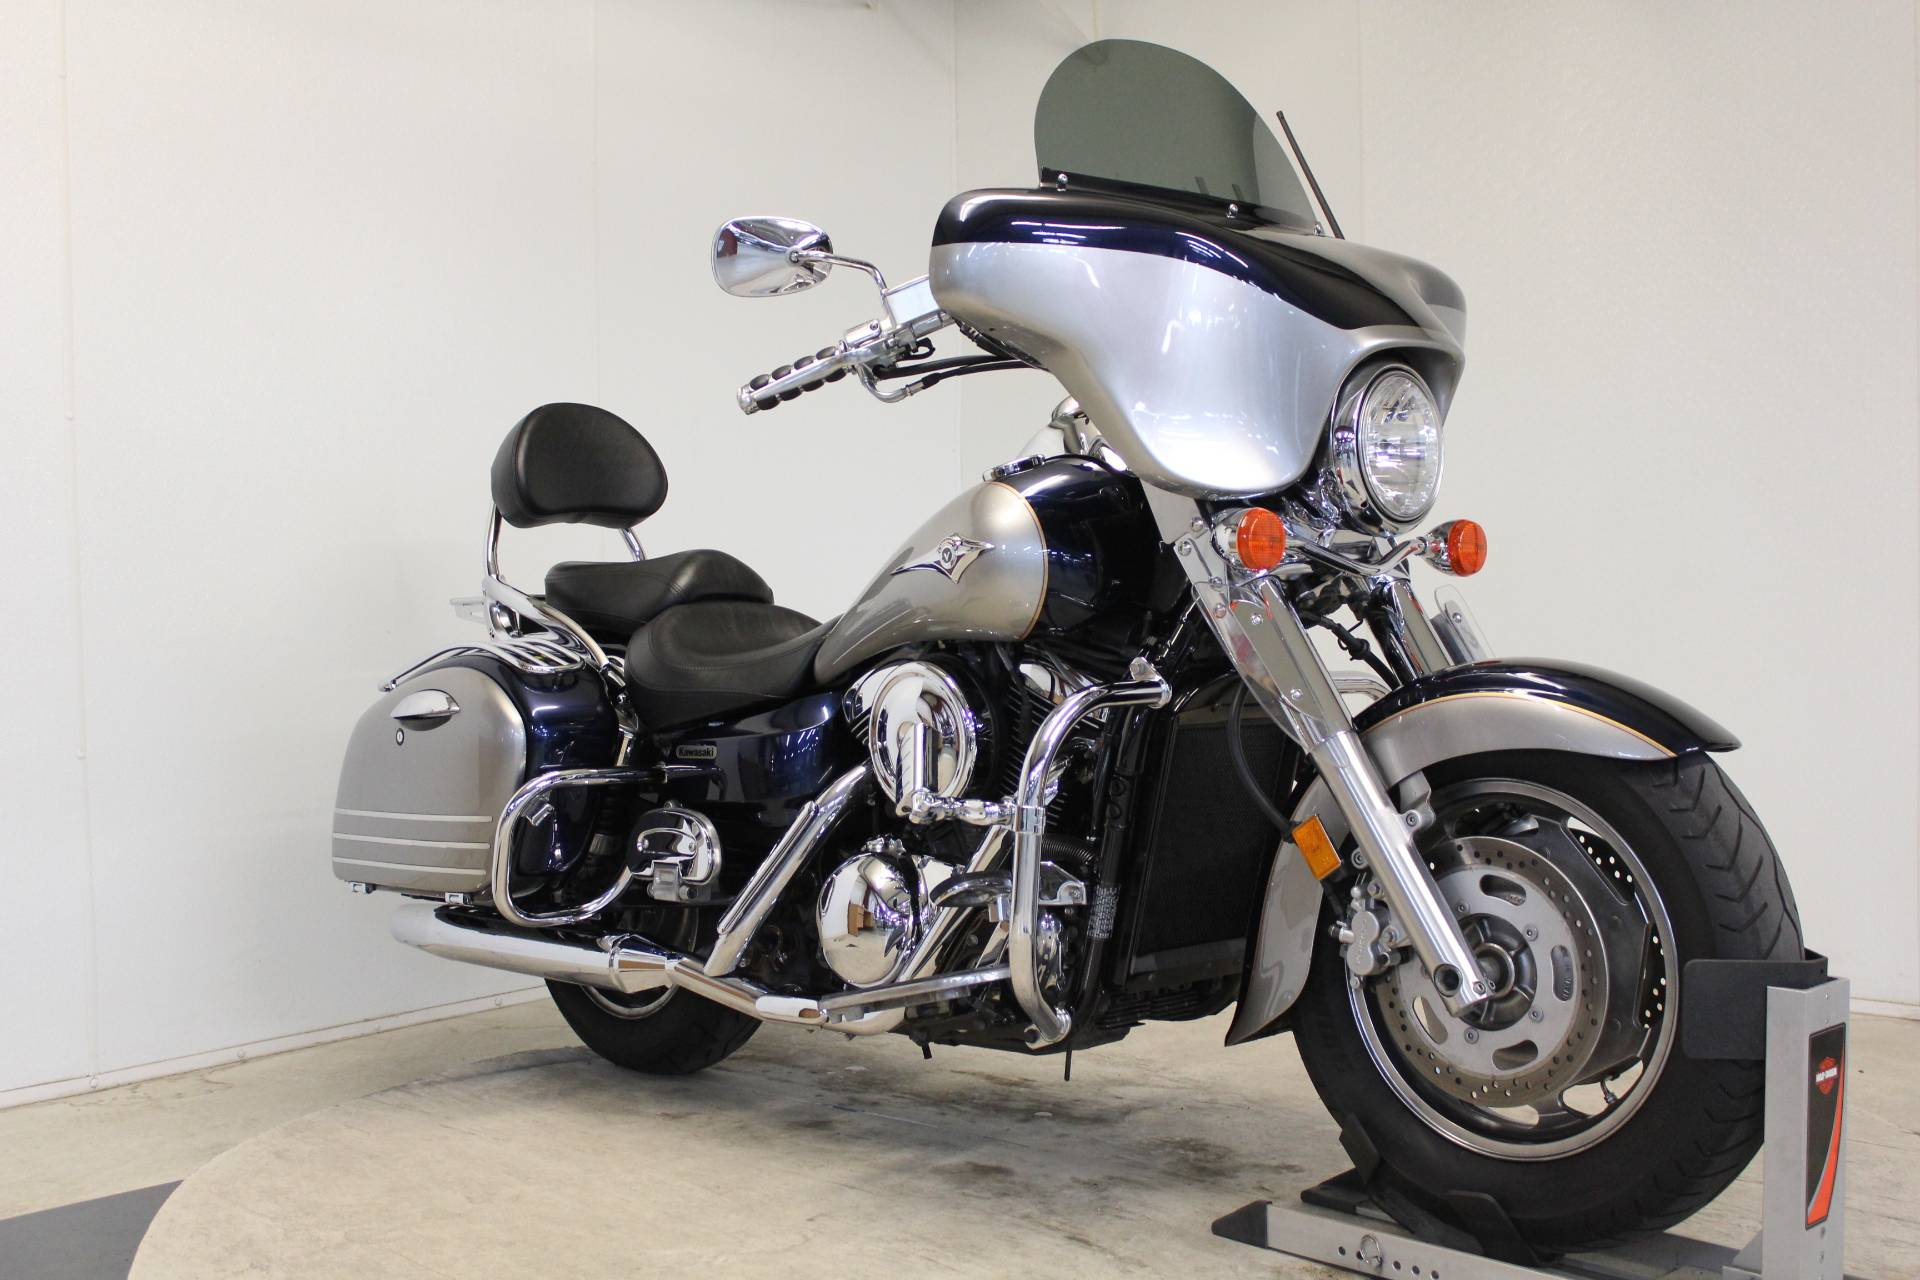 2005 Kawasaki Vulcan 1600 Nomad in Pittsfield, Massachusetts - Photo 2